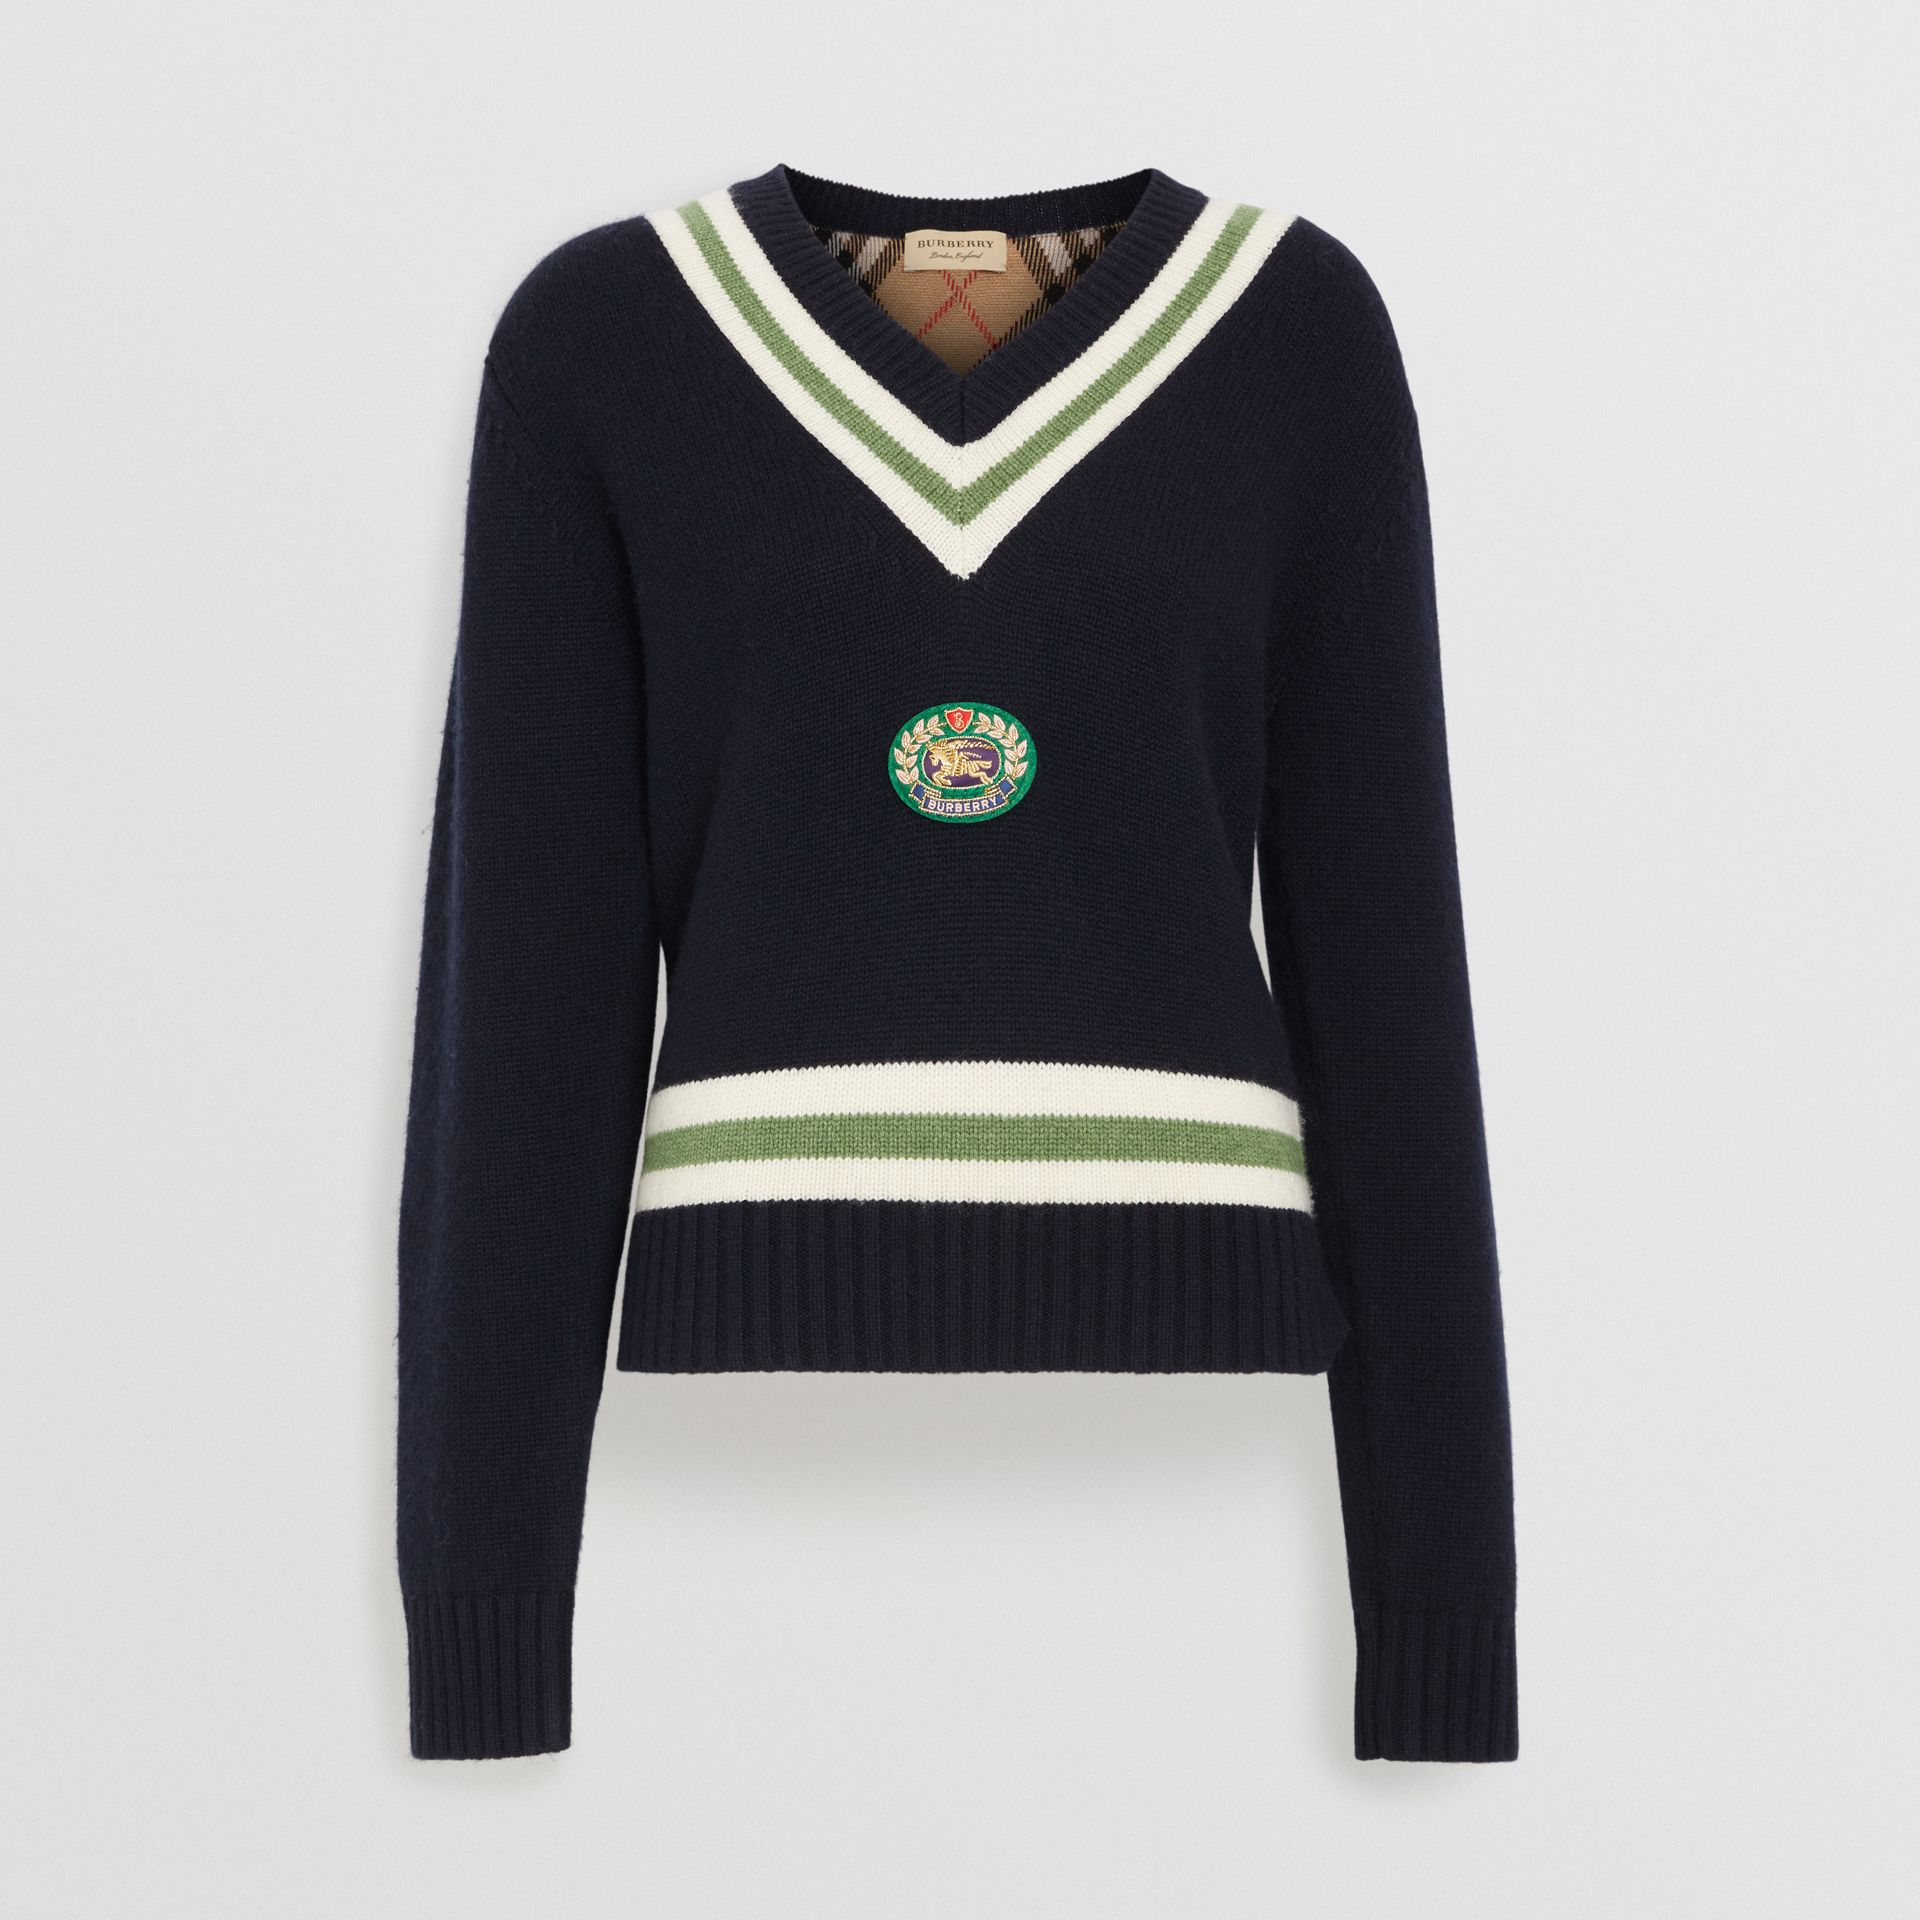 Embroidered Crest Wool Cashmere Sweater in Navy - Women | Burberry Canada - gallery image 3